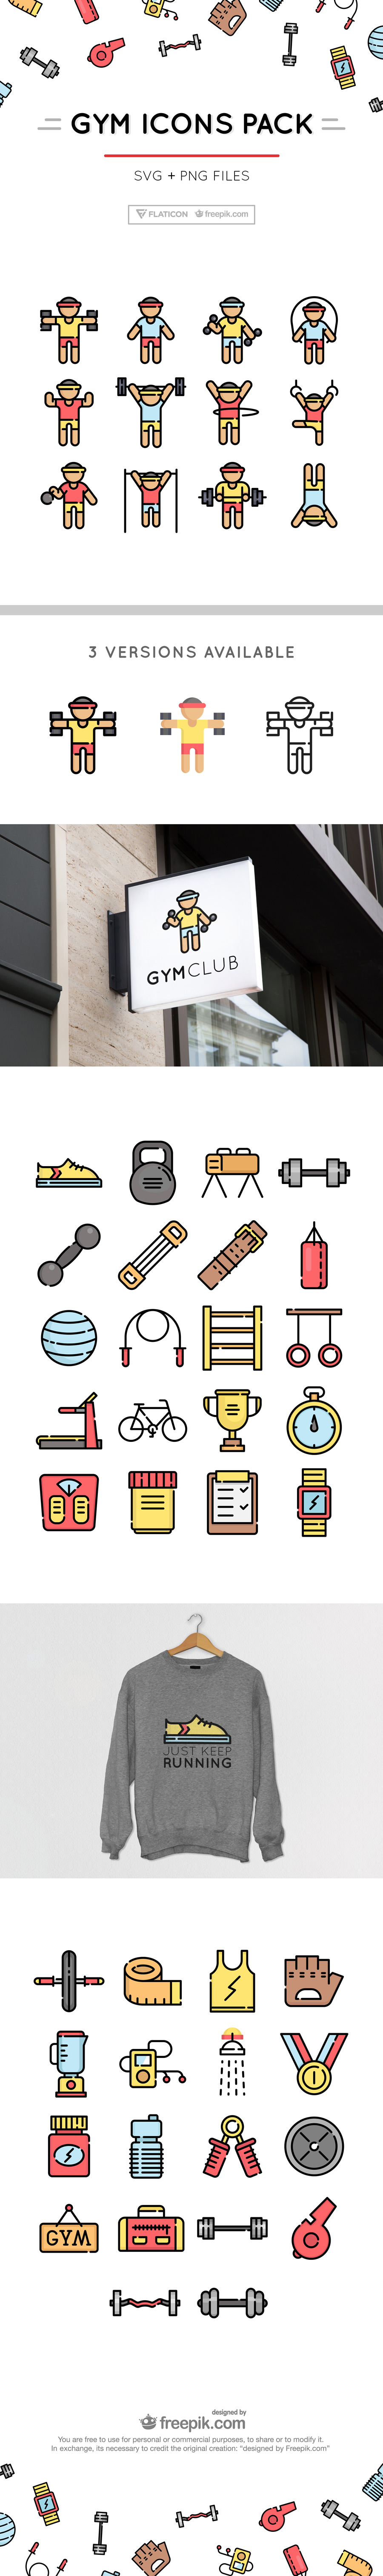 Celebrate Health With This Free Fitness Icons Pack